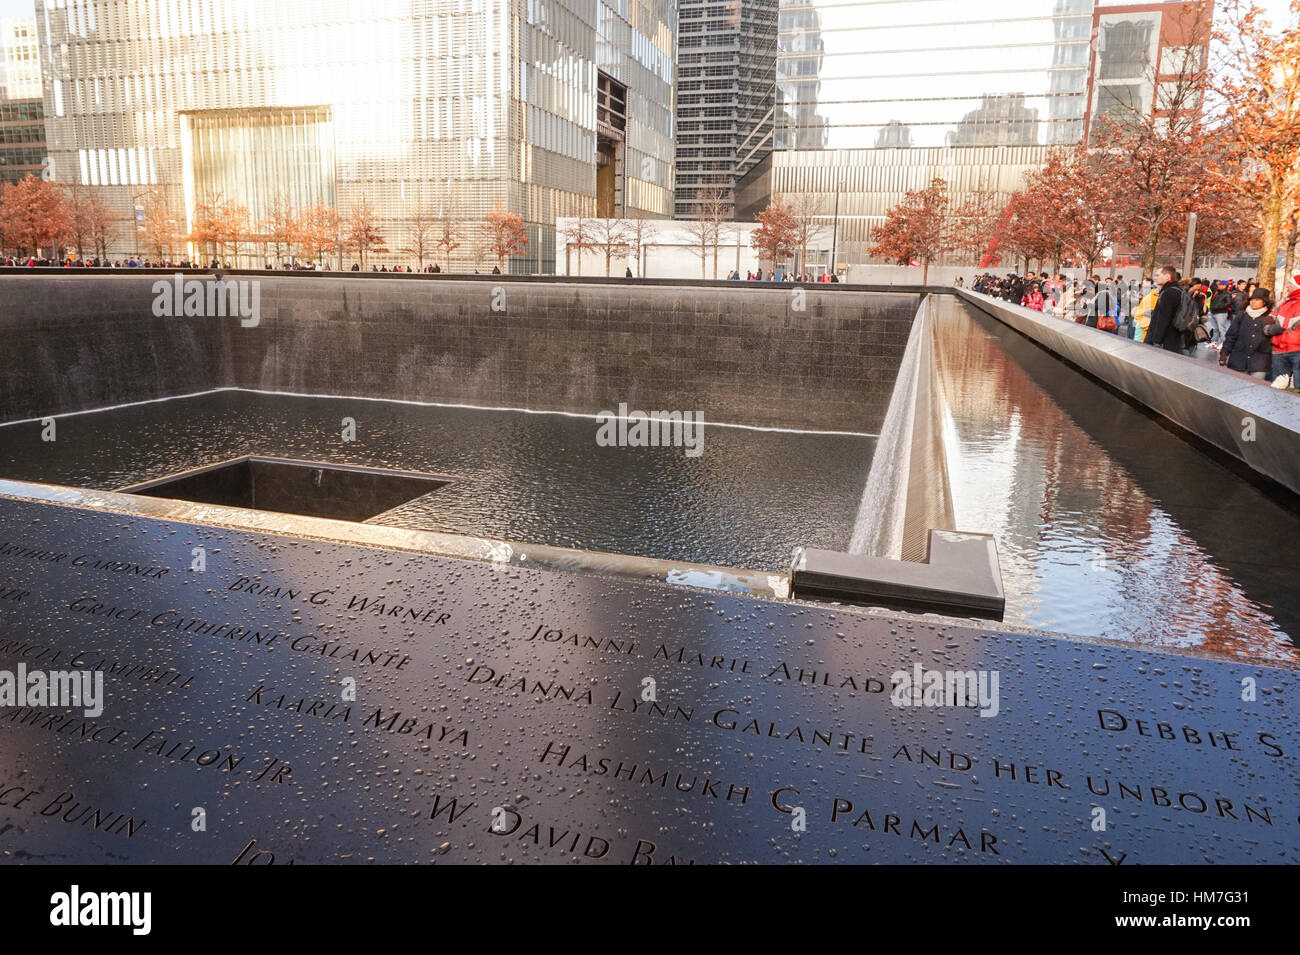 national september 11 memorial on the site of the twin towers of the world trade center - Christmas Bombings